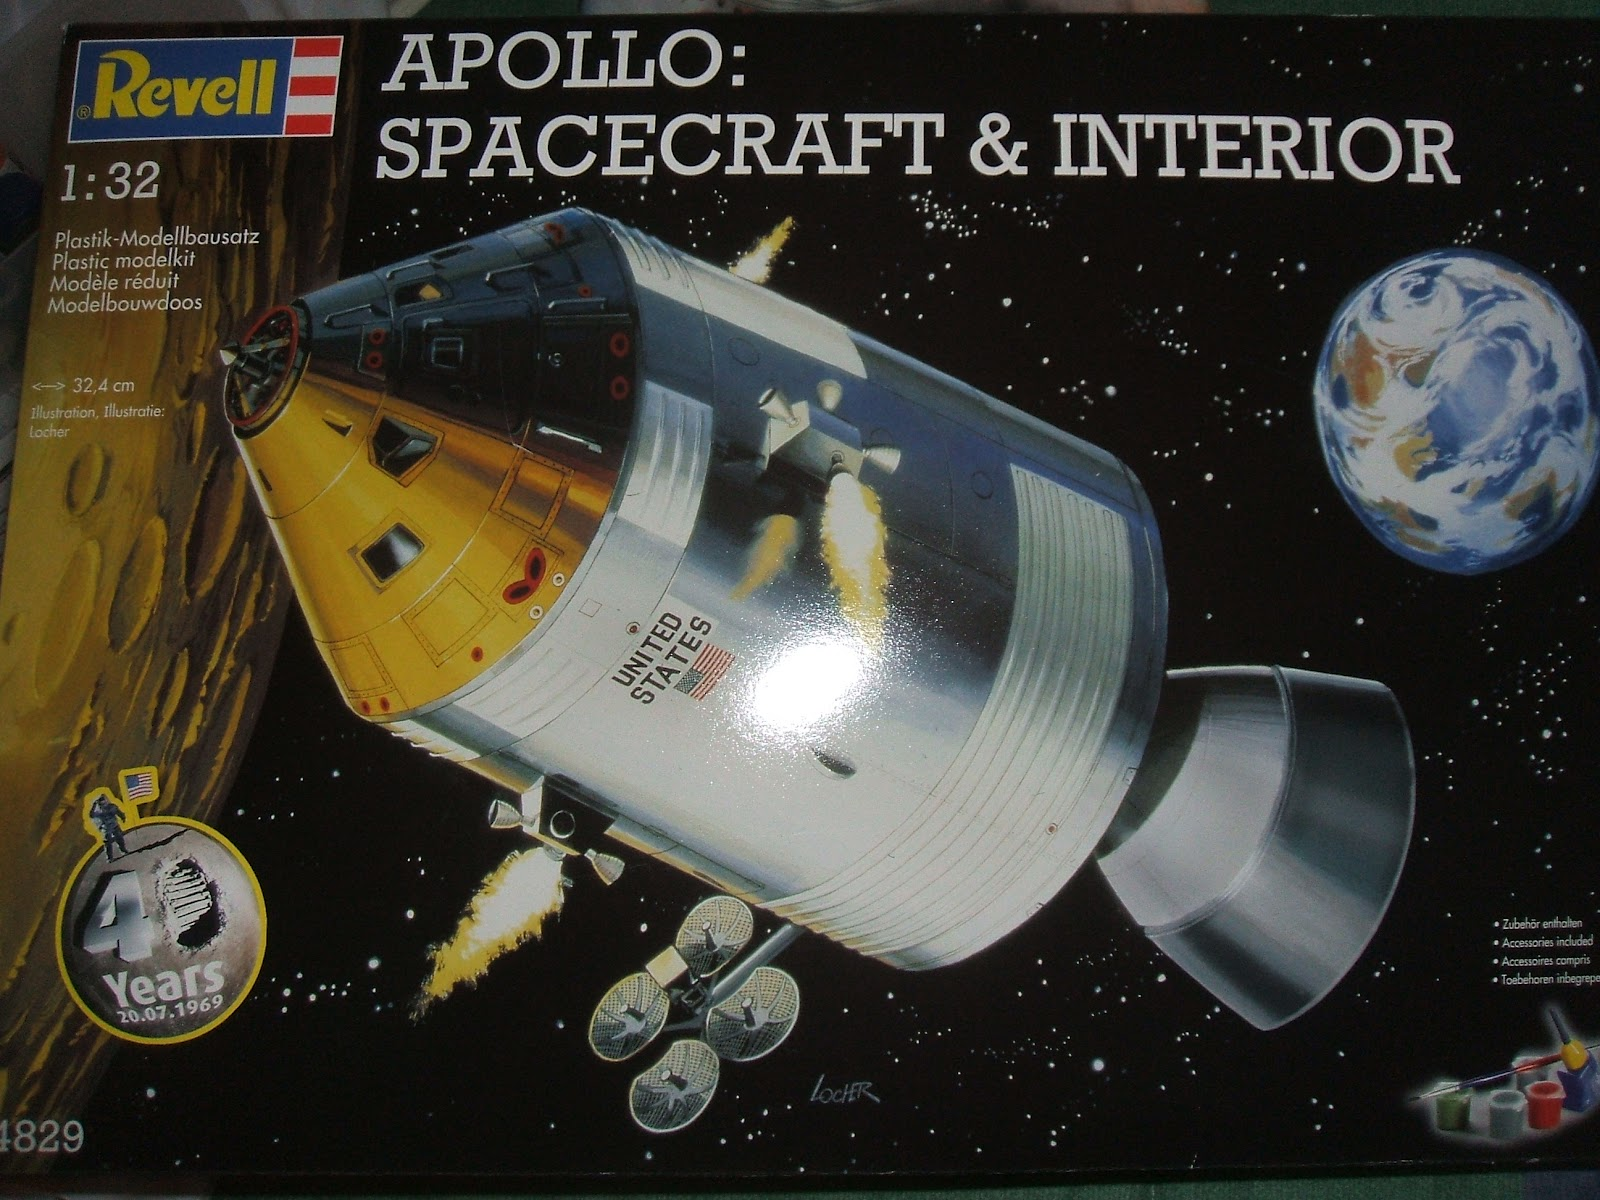 Inside Apollo Spacecraft - Pics about space